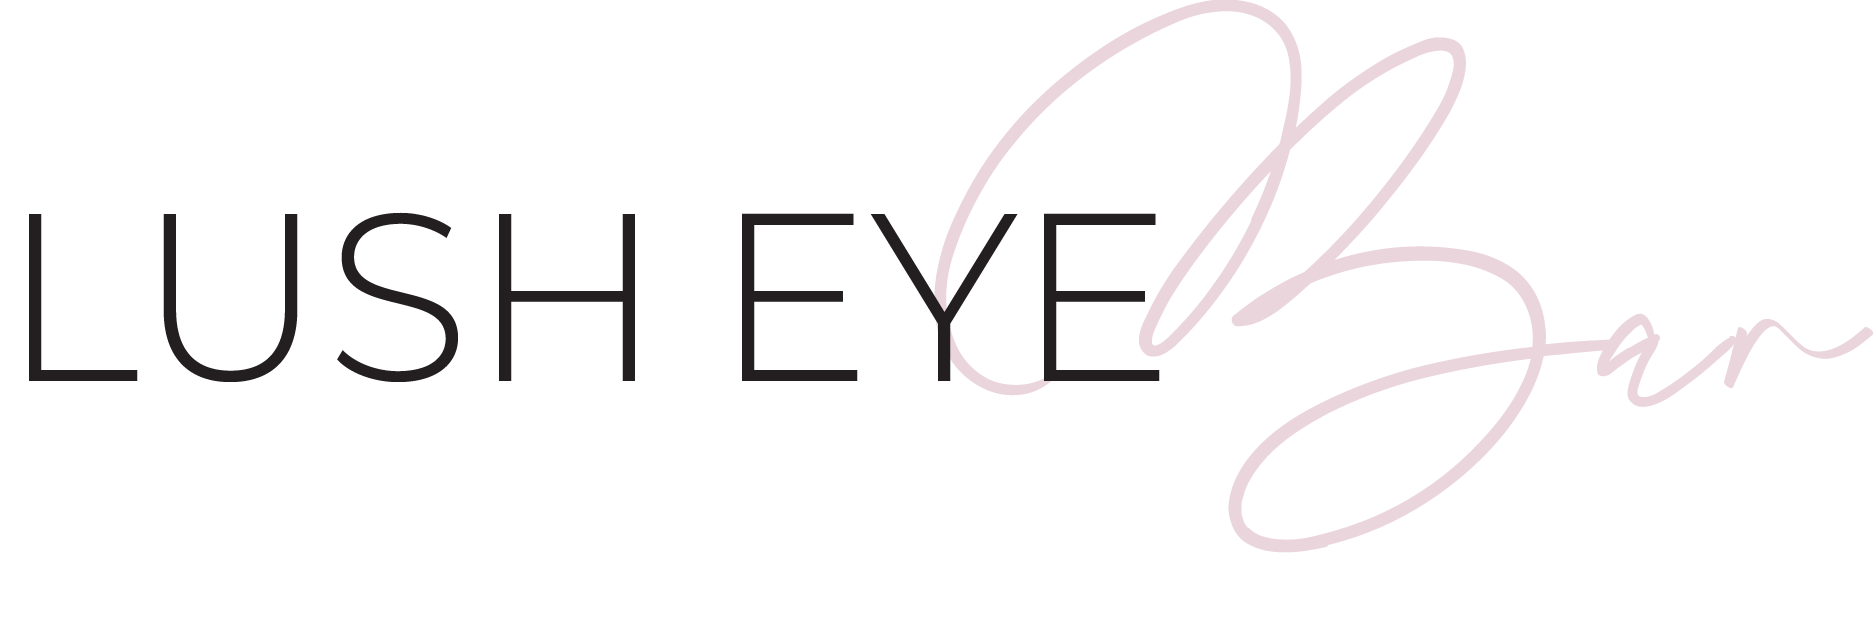 Lush Eye Bar's, an eyelash extension salon's logo